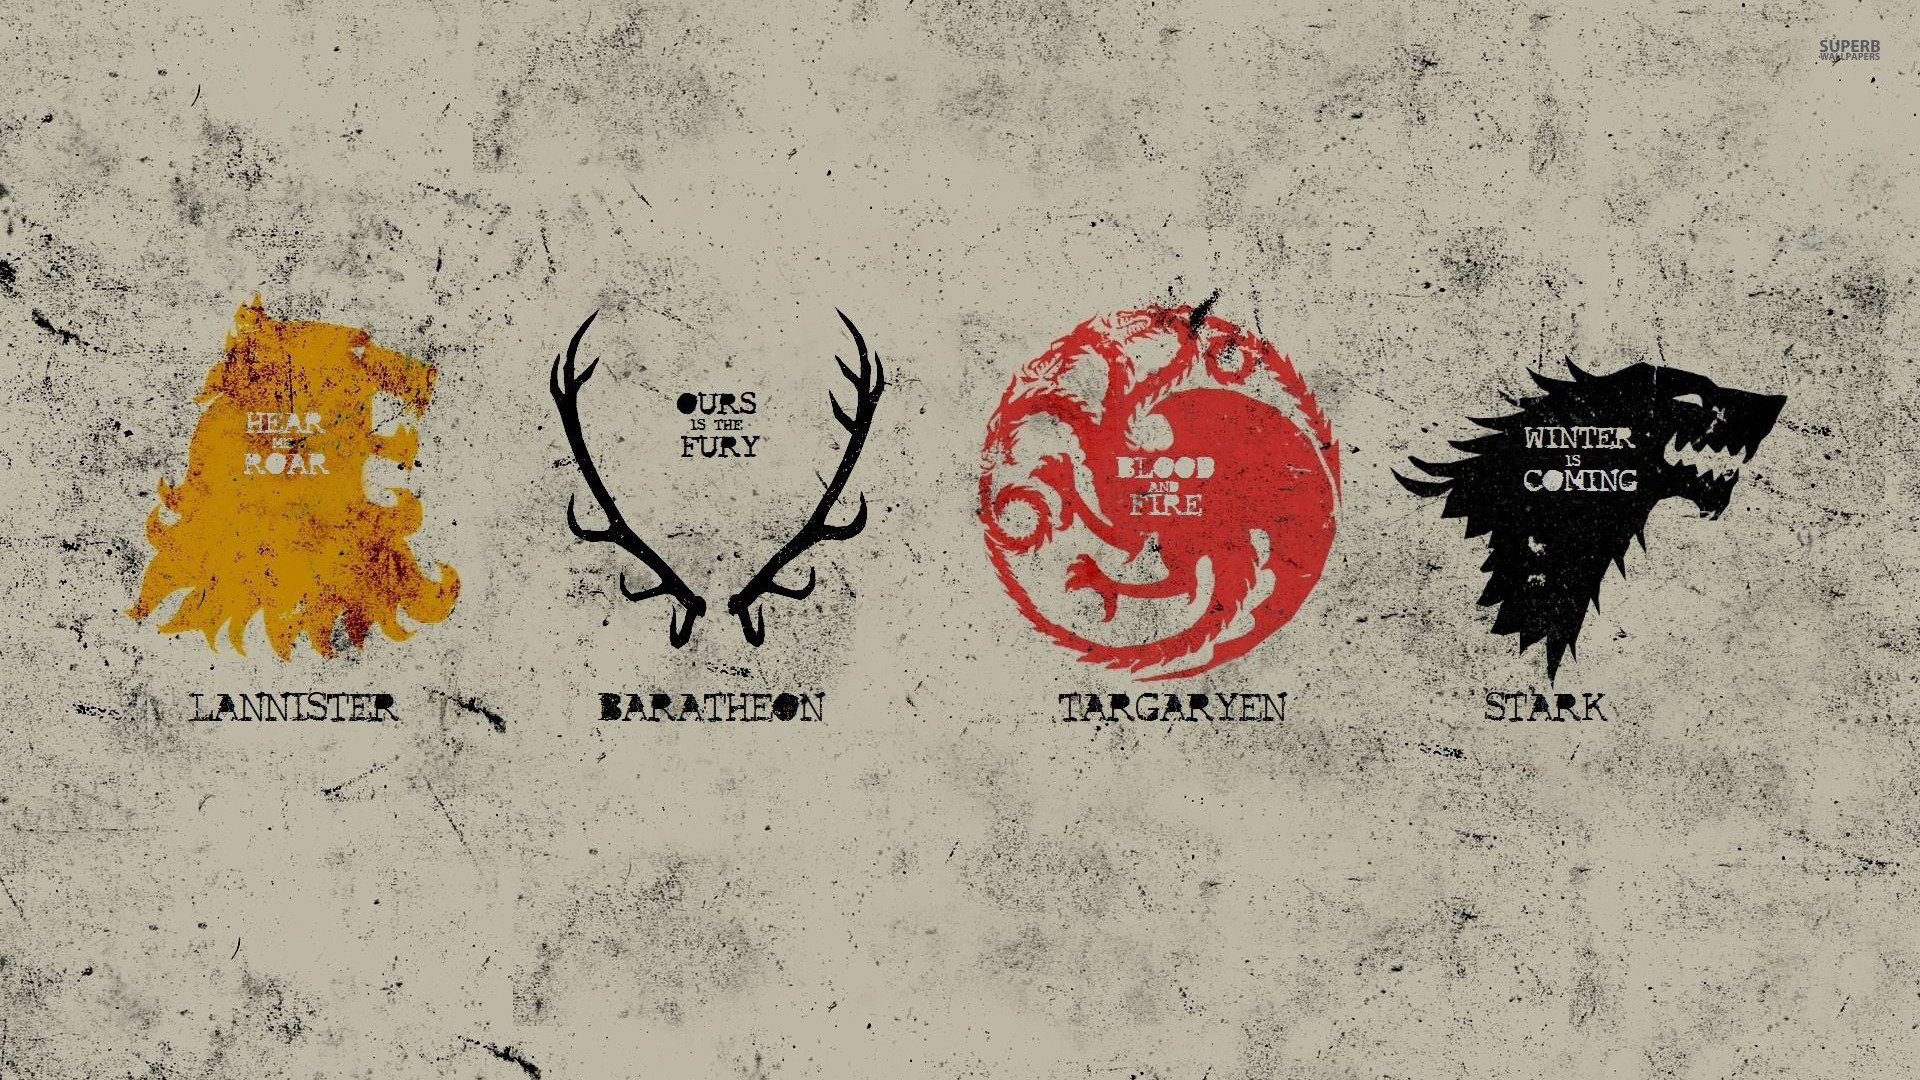 Game of thrones wallpaper fotolip com rich image and